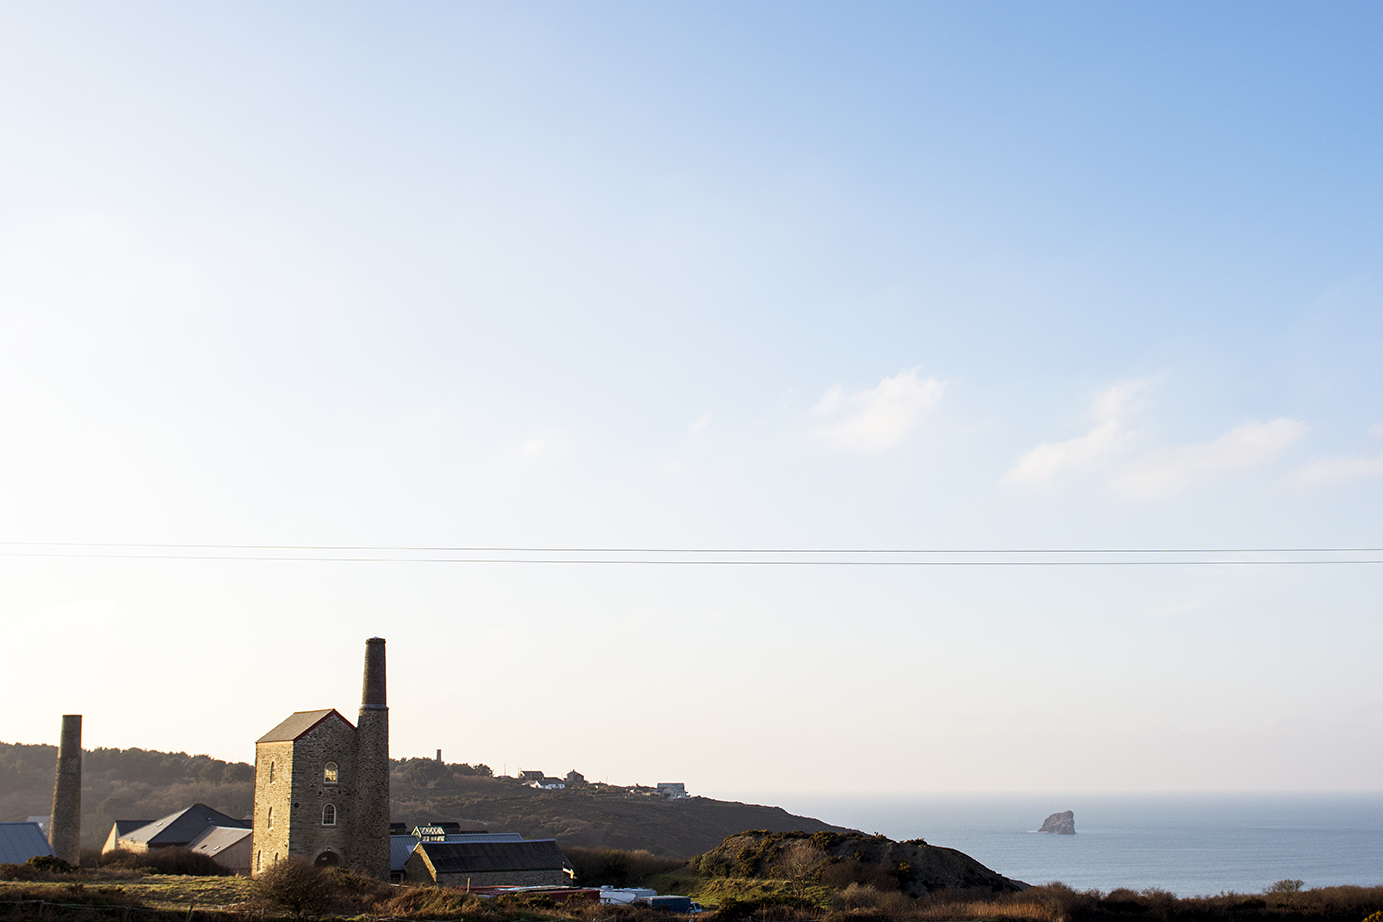 Landscape of Cornwall coast with an engine house and the sea.